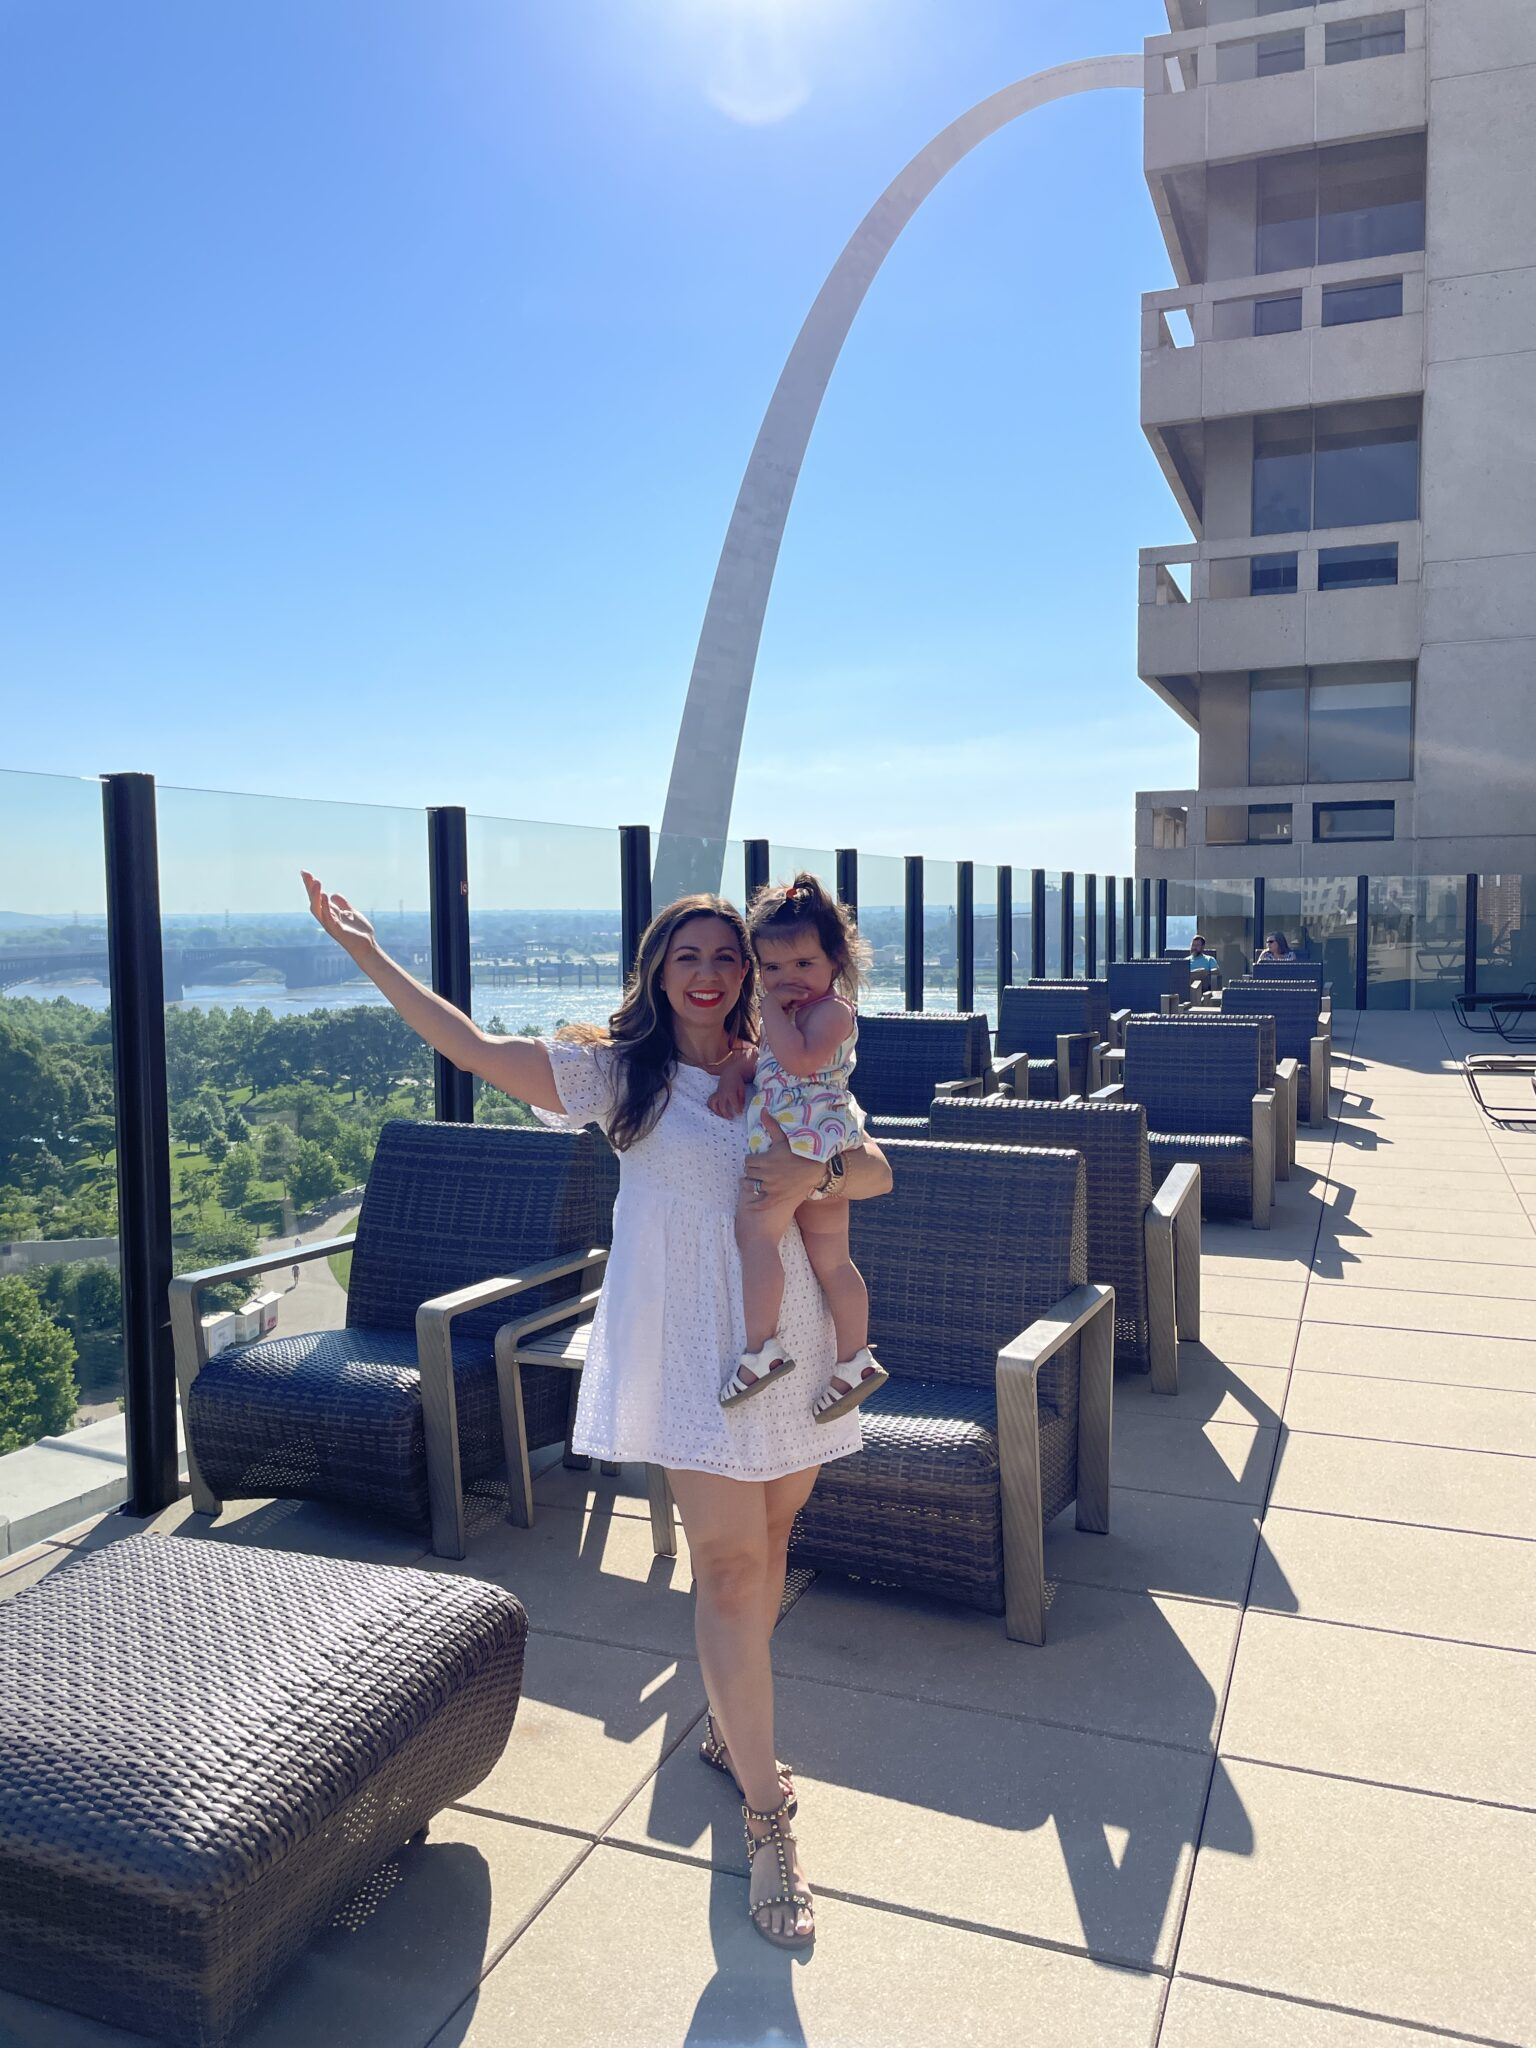 Traveling to St. Louis by popular Chicago travel blogger, Glass of Glam: image of a woman wearing a white dress and holding her young daughter while standing on a roof.